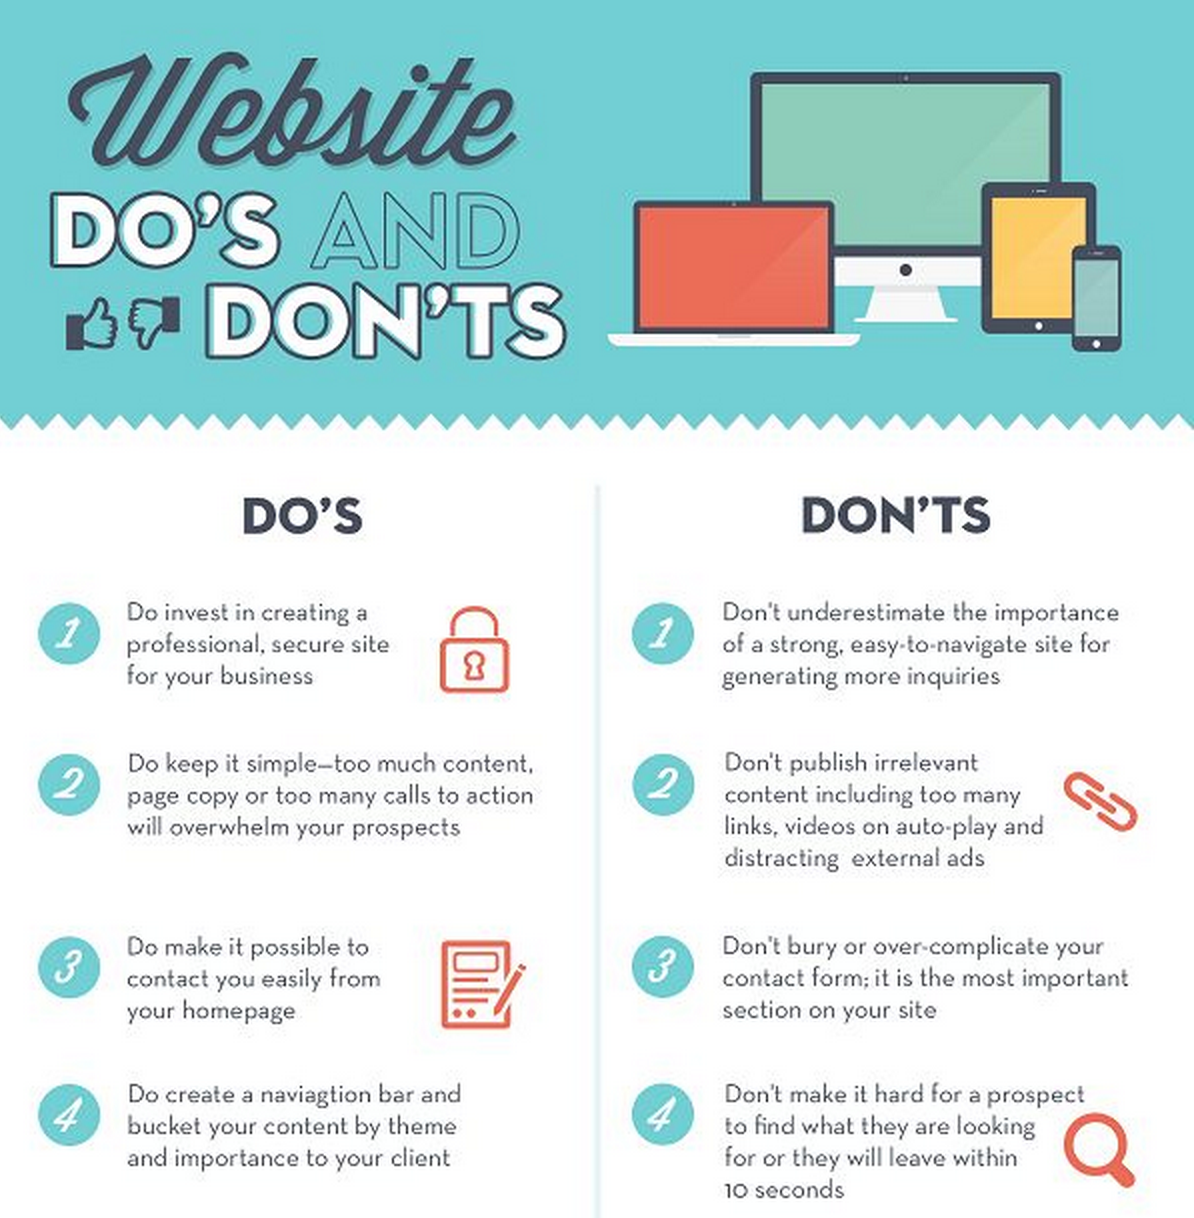 Website Dos and Donts